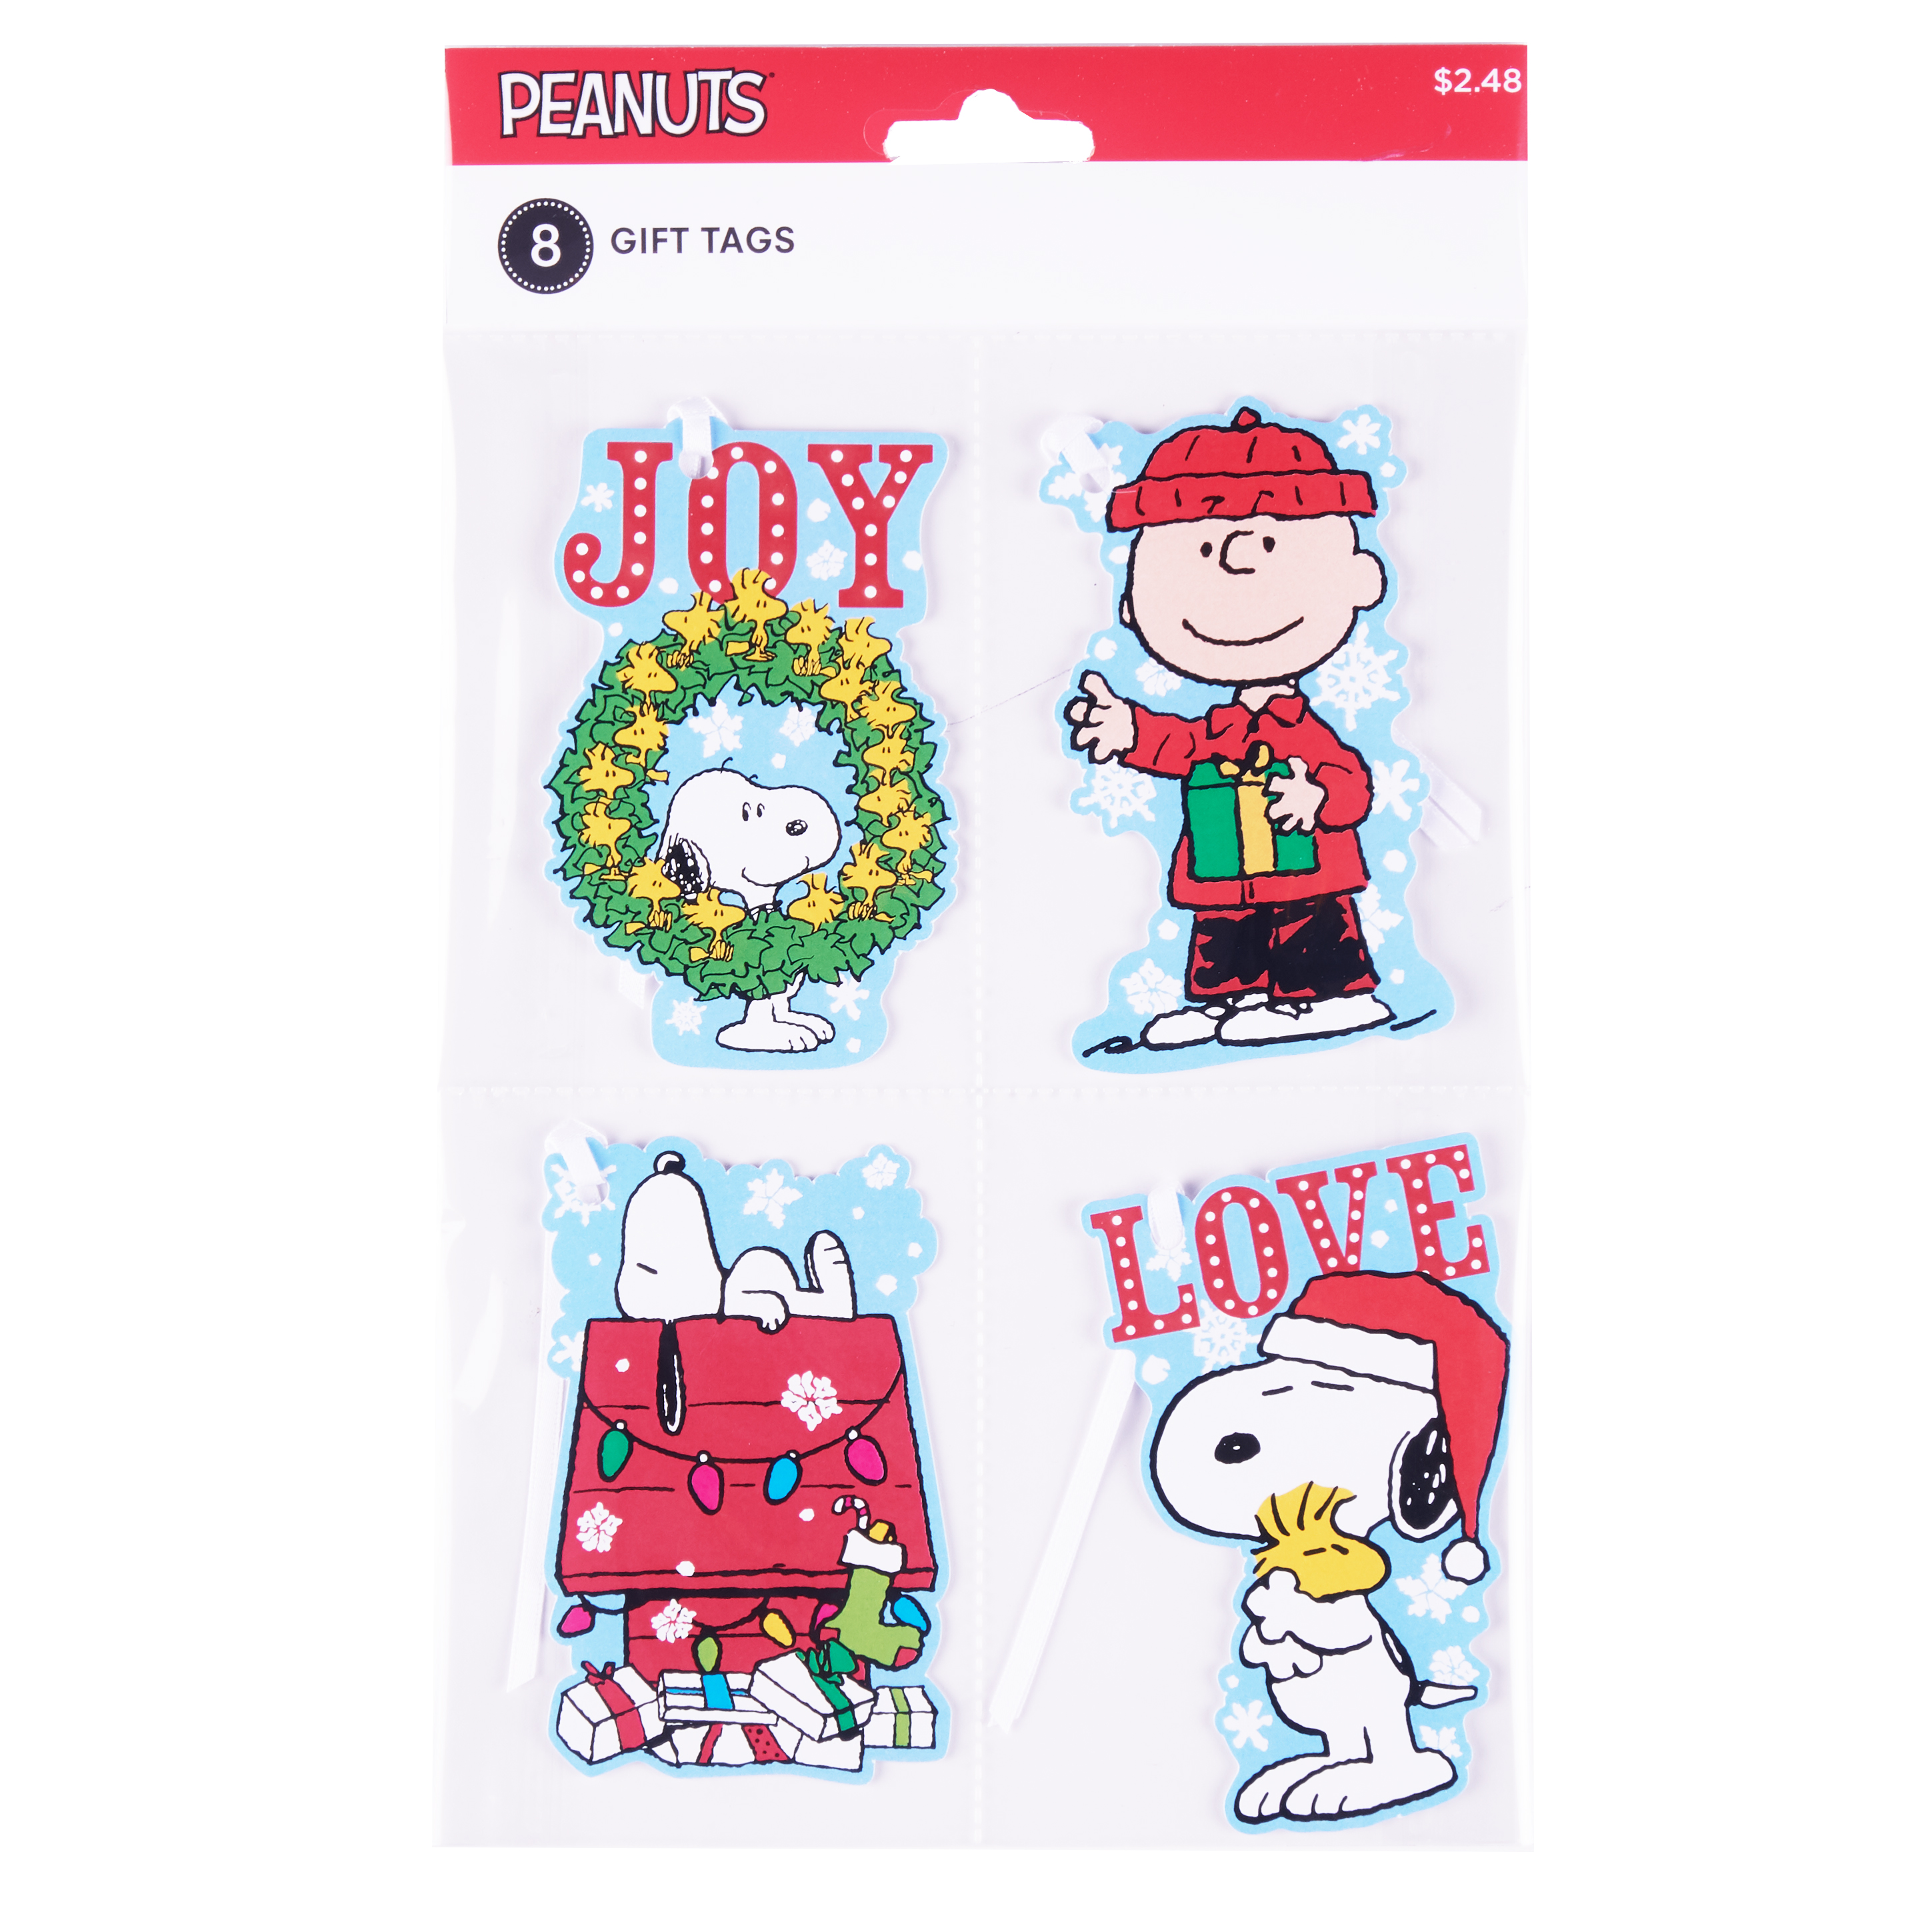 Holiday Time Peanuts Gift Tags, 8 Count